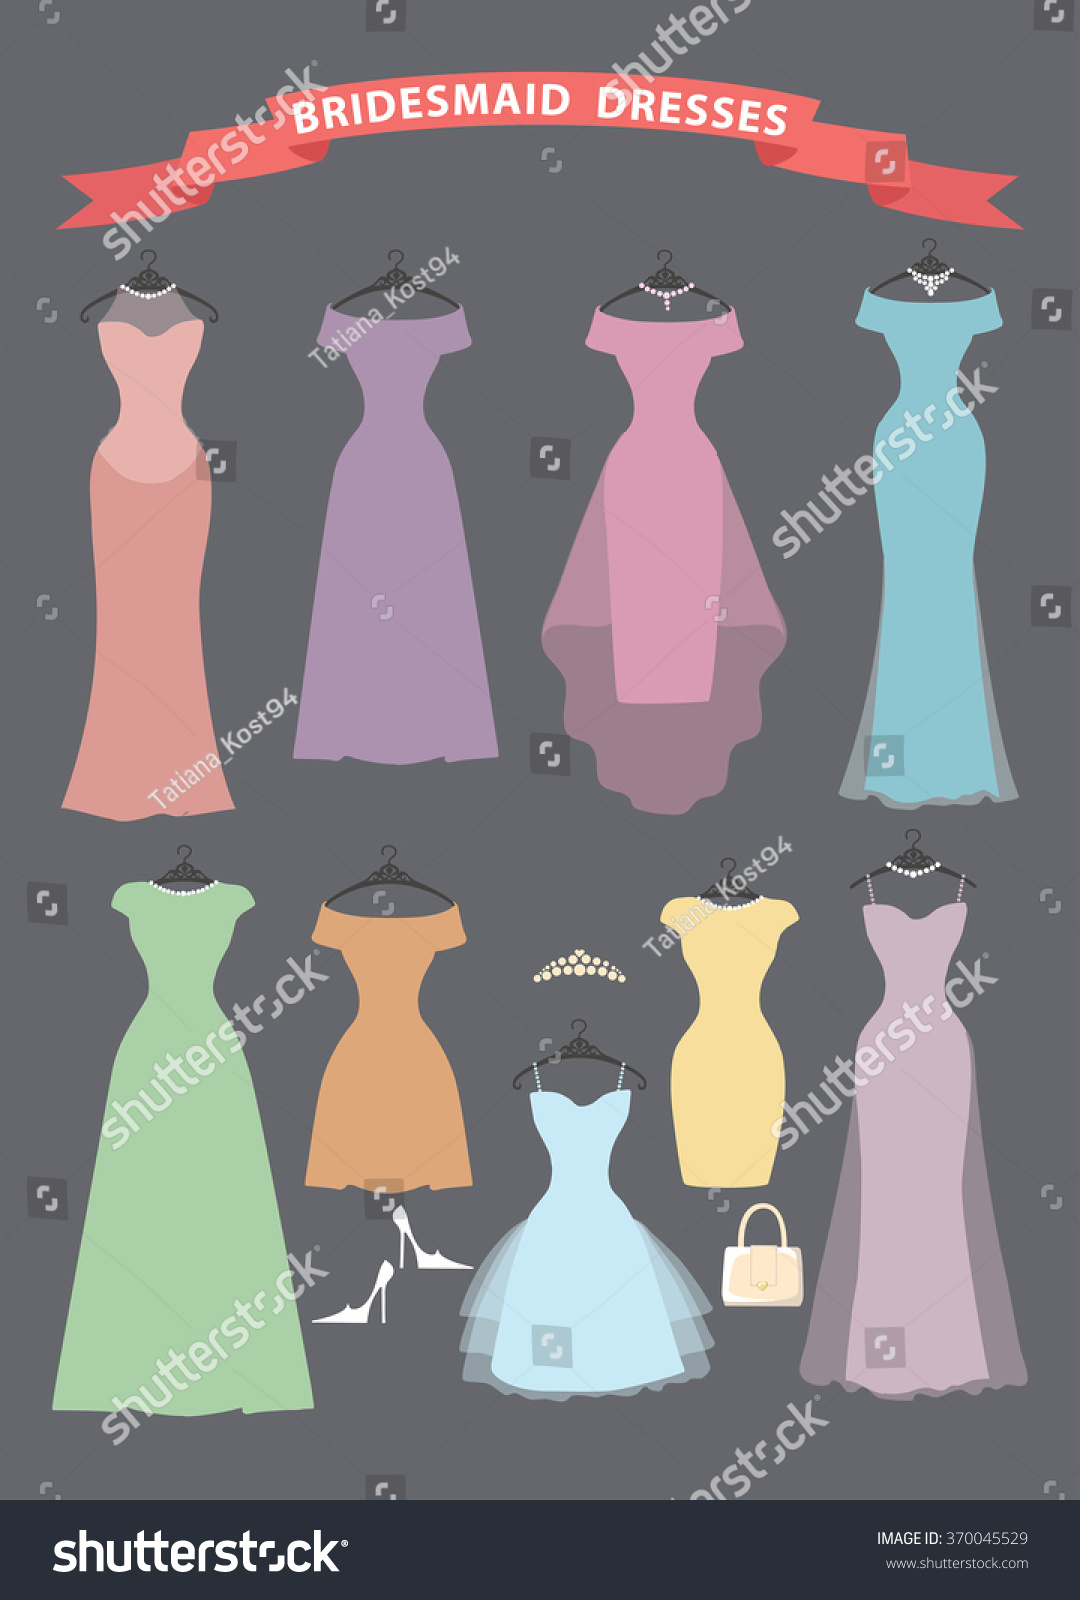 Wedding bridesmaid dresses pastel colorsfashion illustrationflat wedding bridesmaid dresses in pastel colors illustrationflat style dresses hang on ombrellifo Image collections